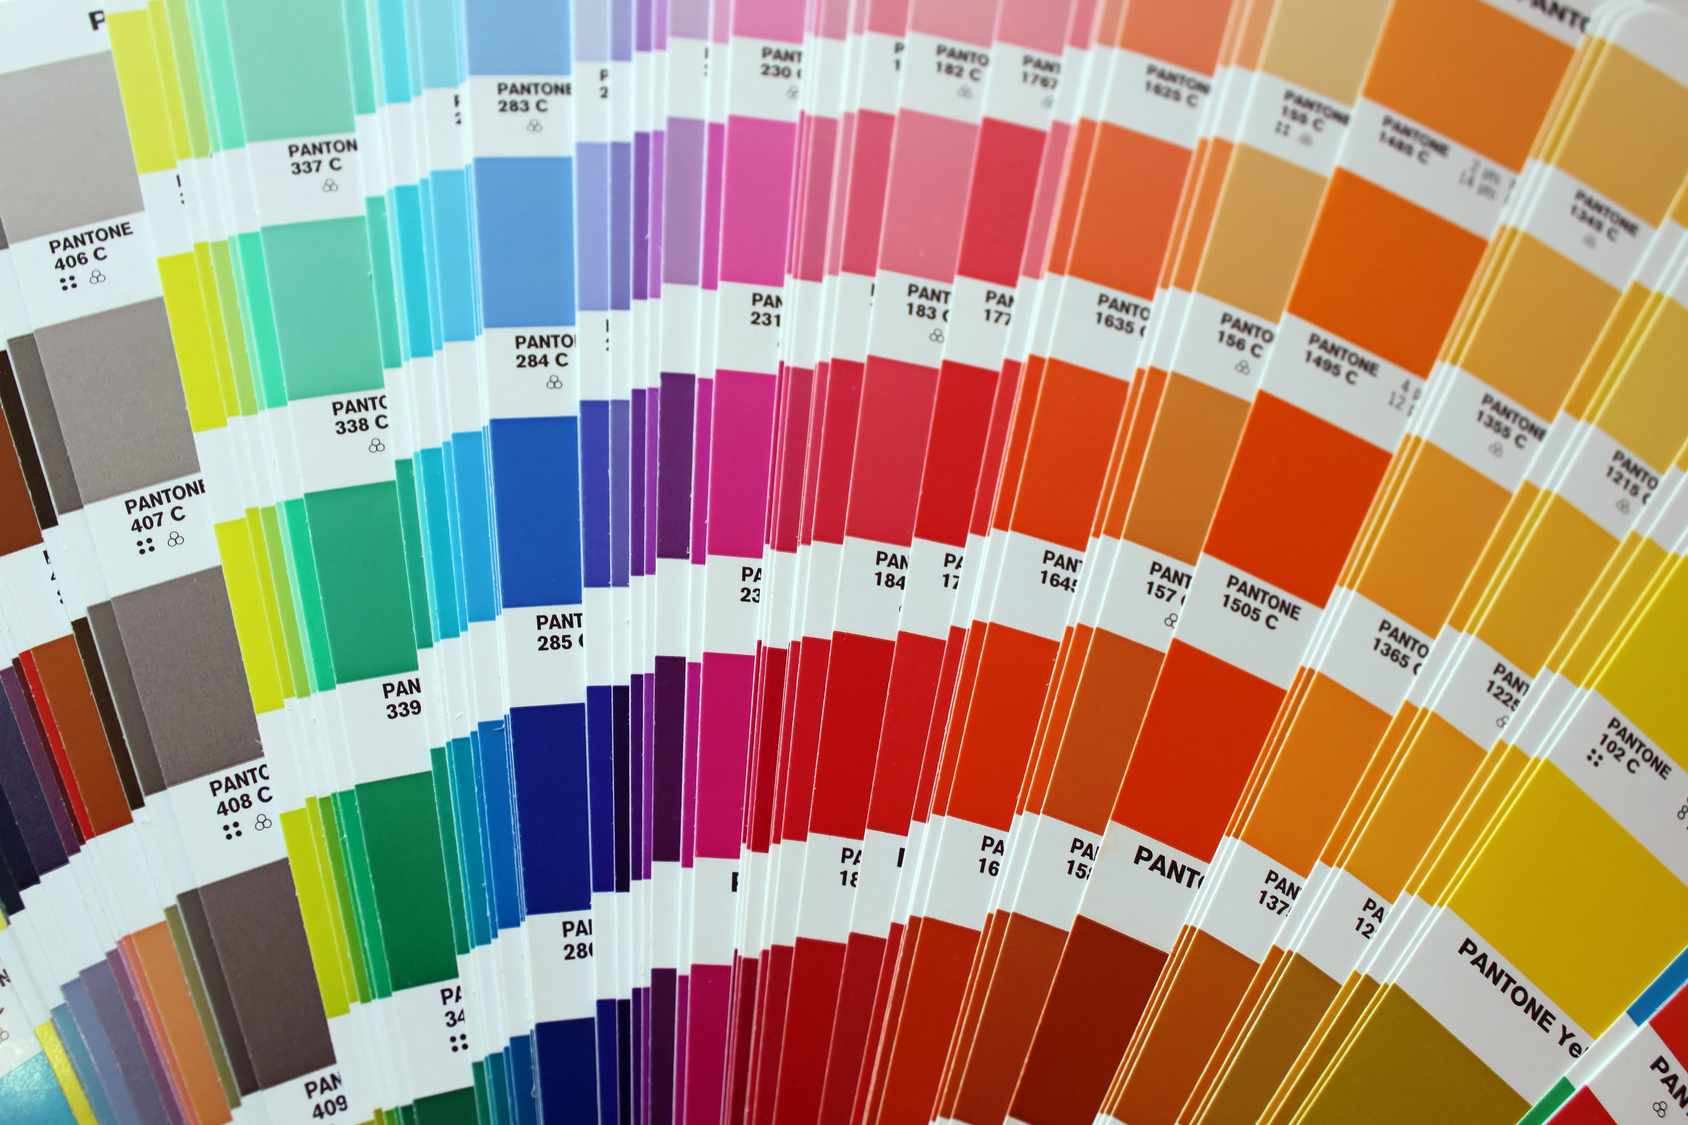 Pantone book showing a range of spot colours swatches and their CMYK codes